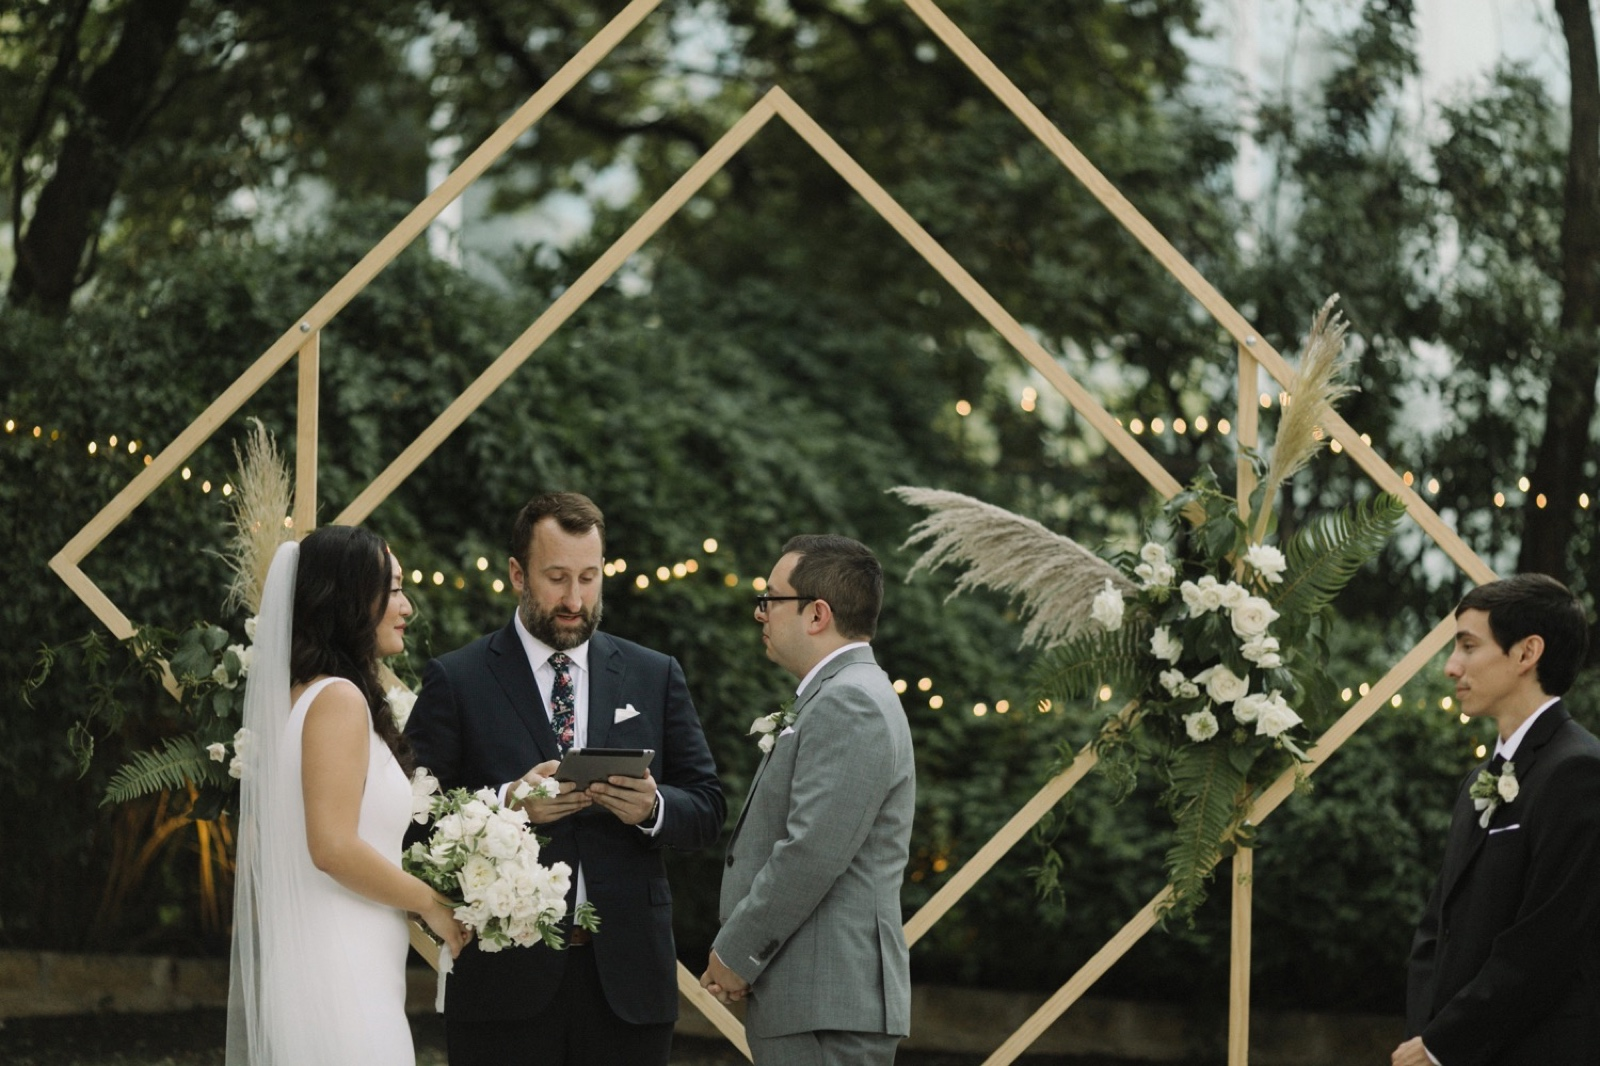 Unique ceremony in the garden of the Allen House